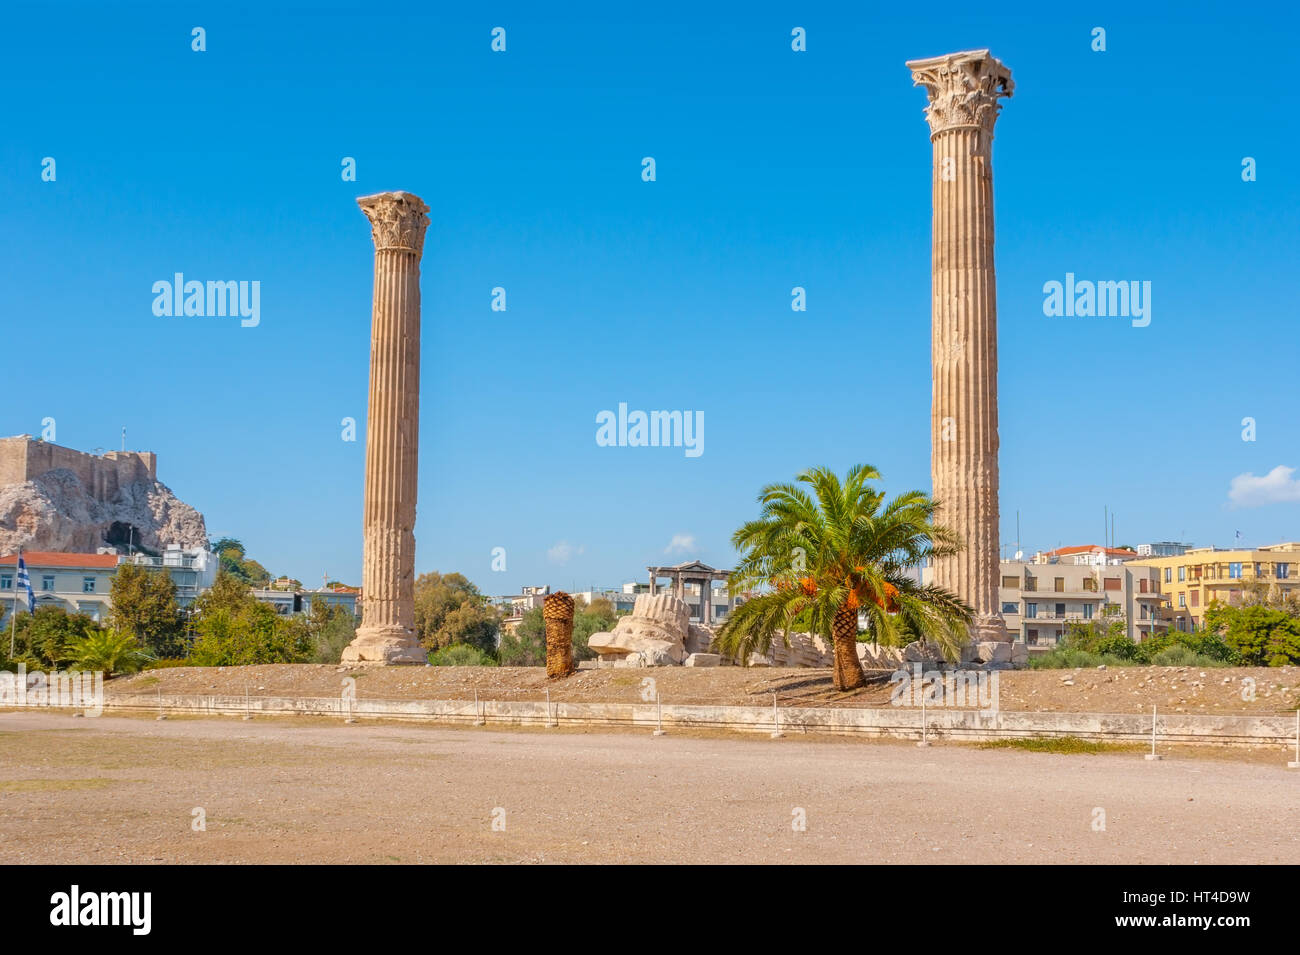 The antique columns are remainings of the ancient Temple of Olympian Zeus, Athens, Greece - Stock Image